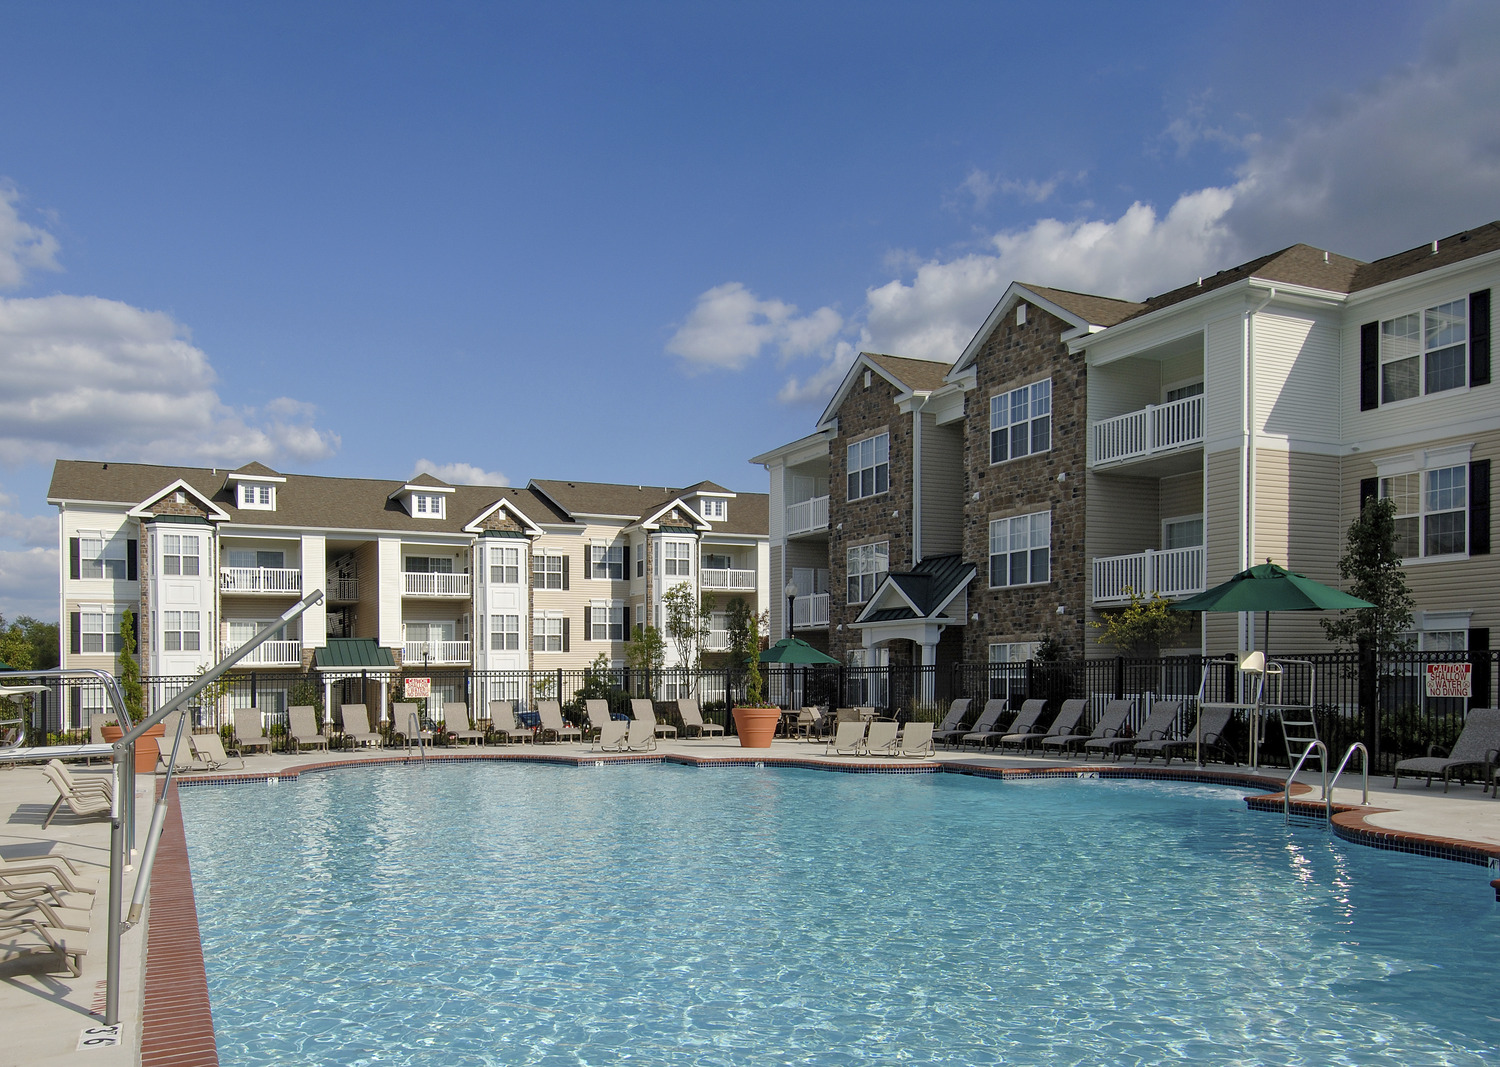 CBG builds The Elms at Montjoy, a 286 Market-Rate Apartments in Ellicott City, MD